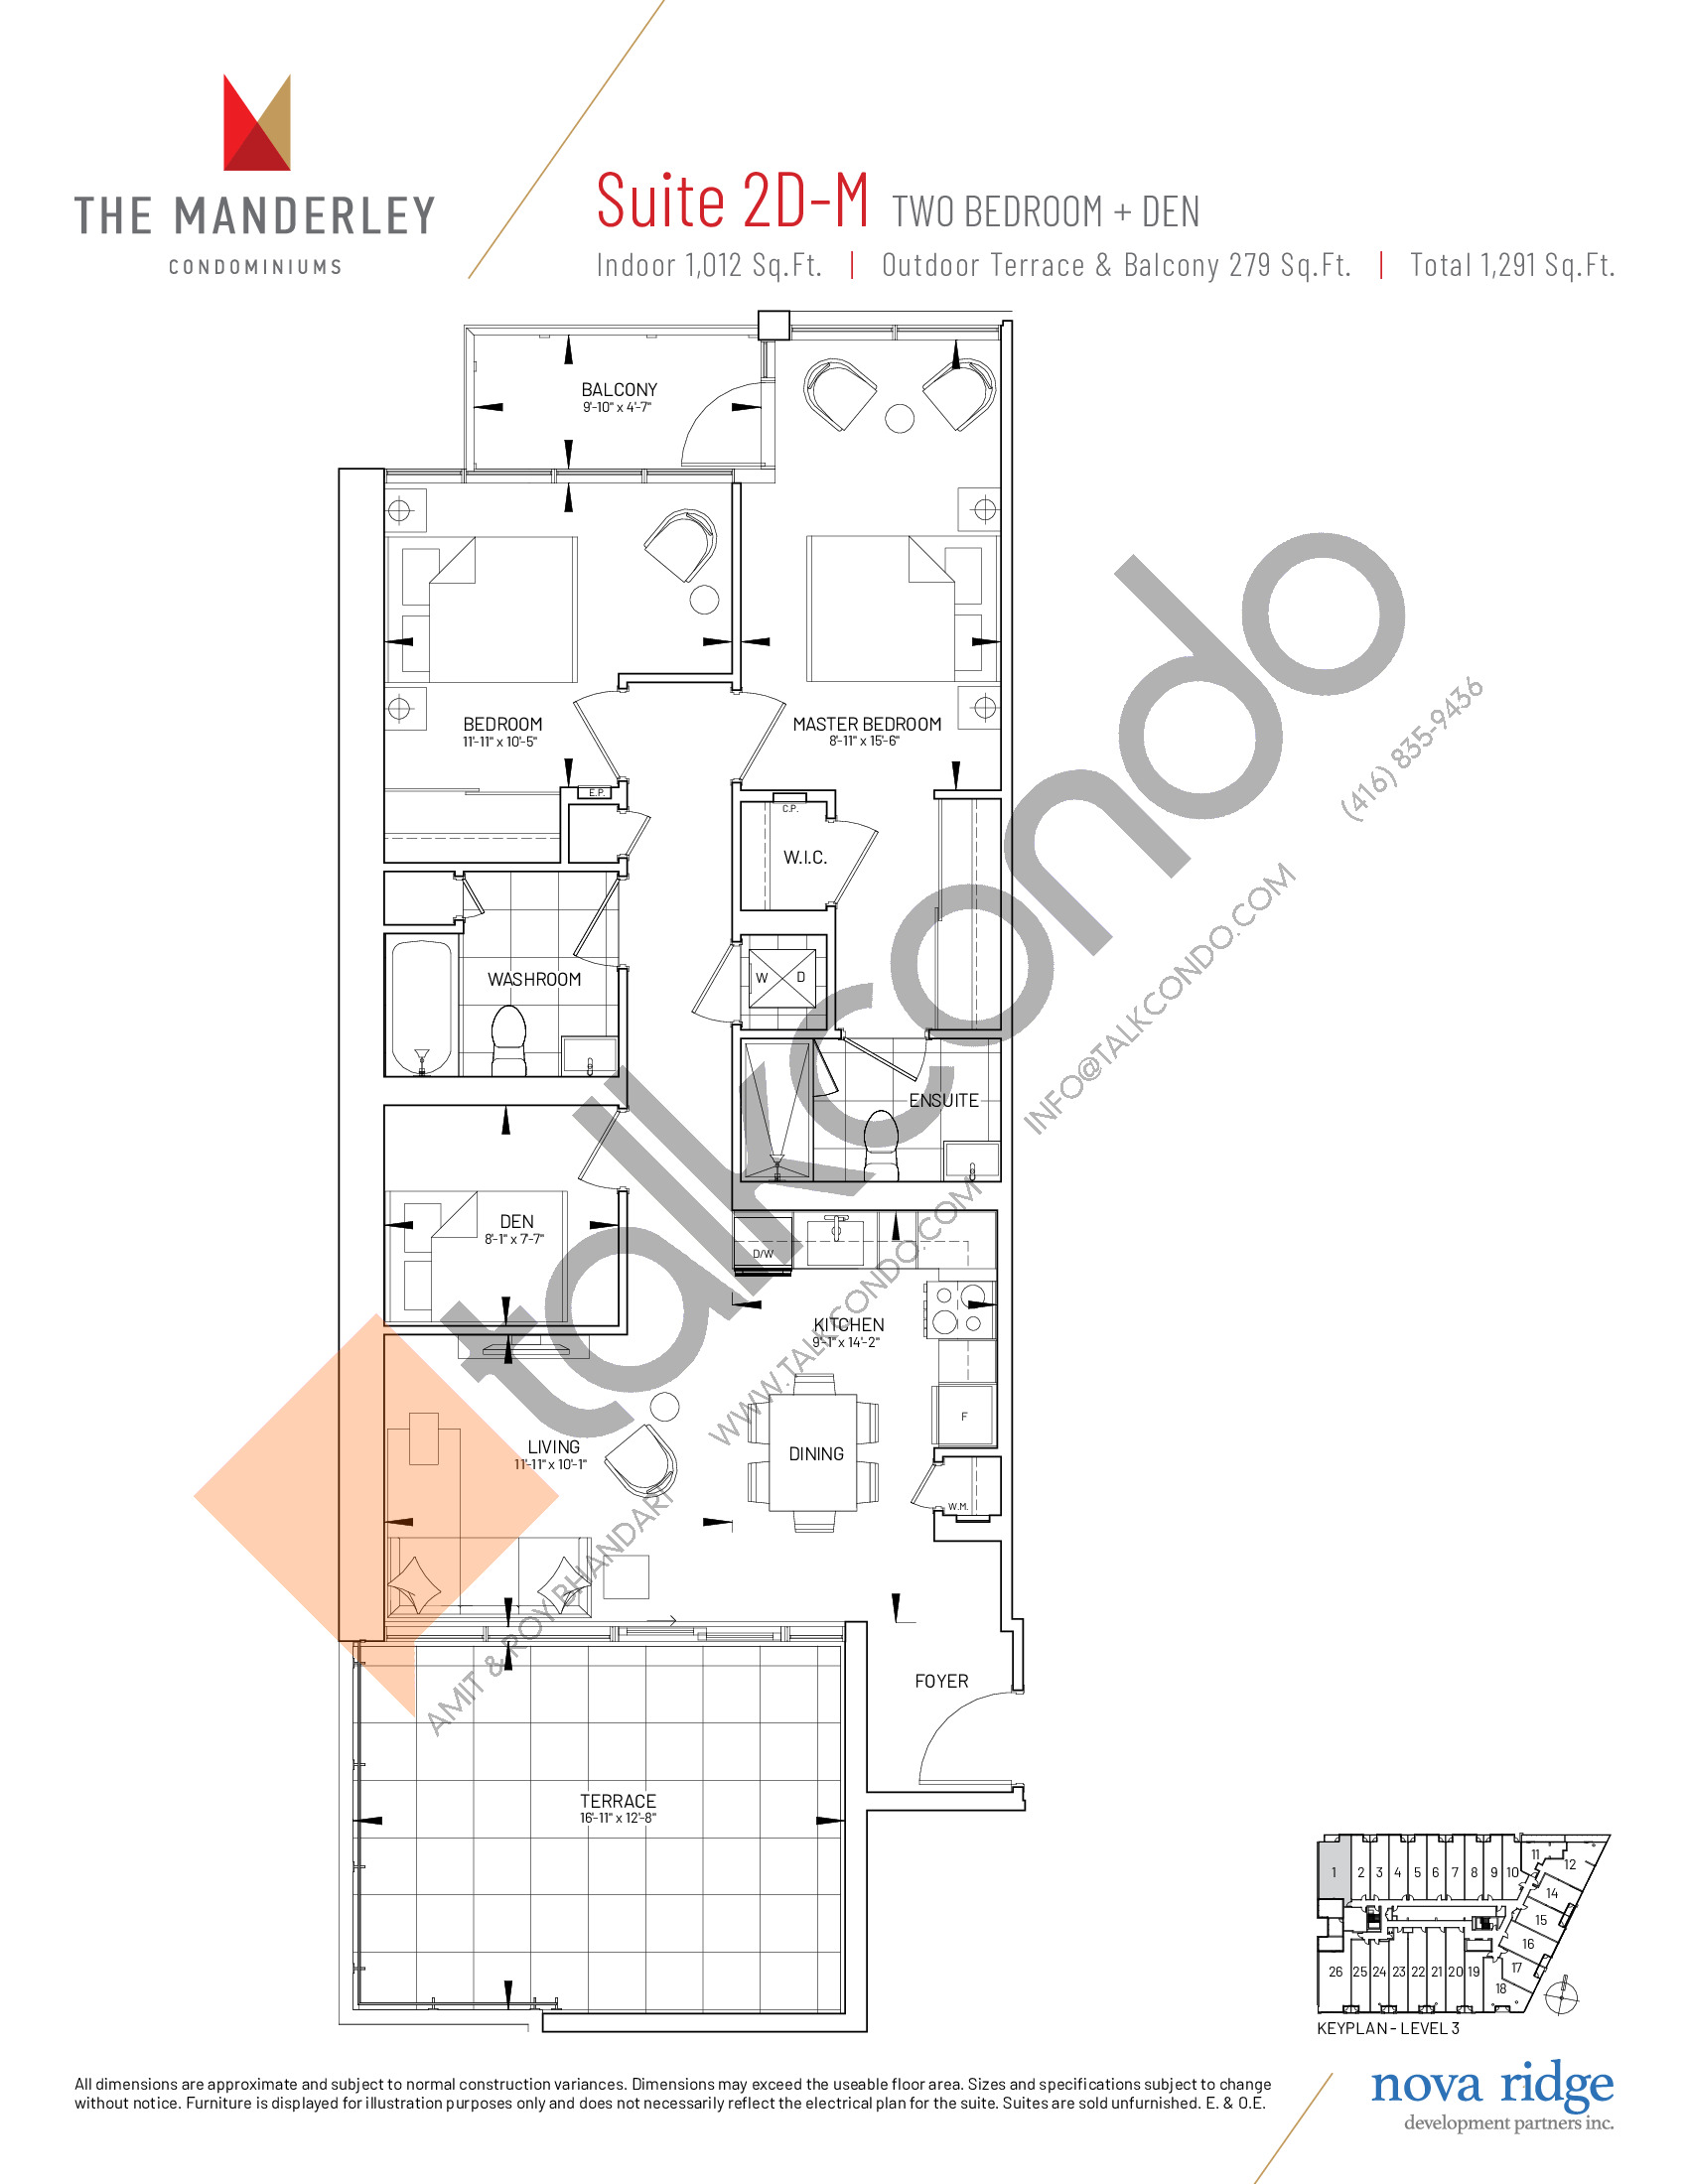 Suite 2D-M Floor Plan at The Manderley Condos - 1012 sq.ft